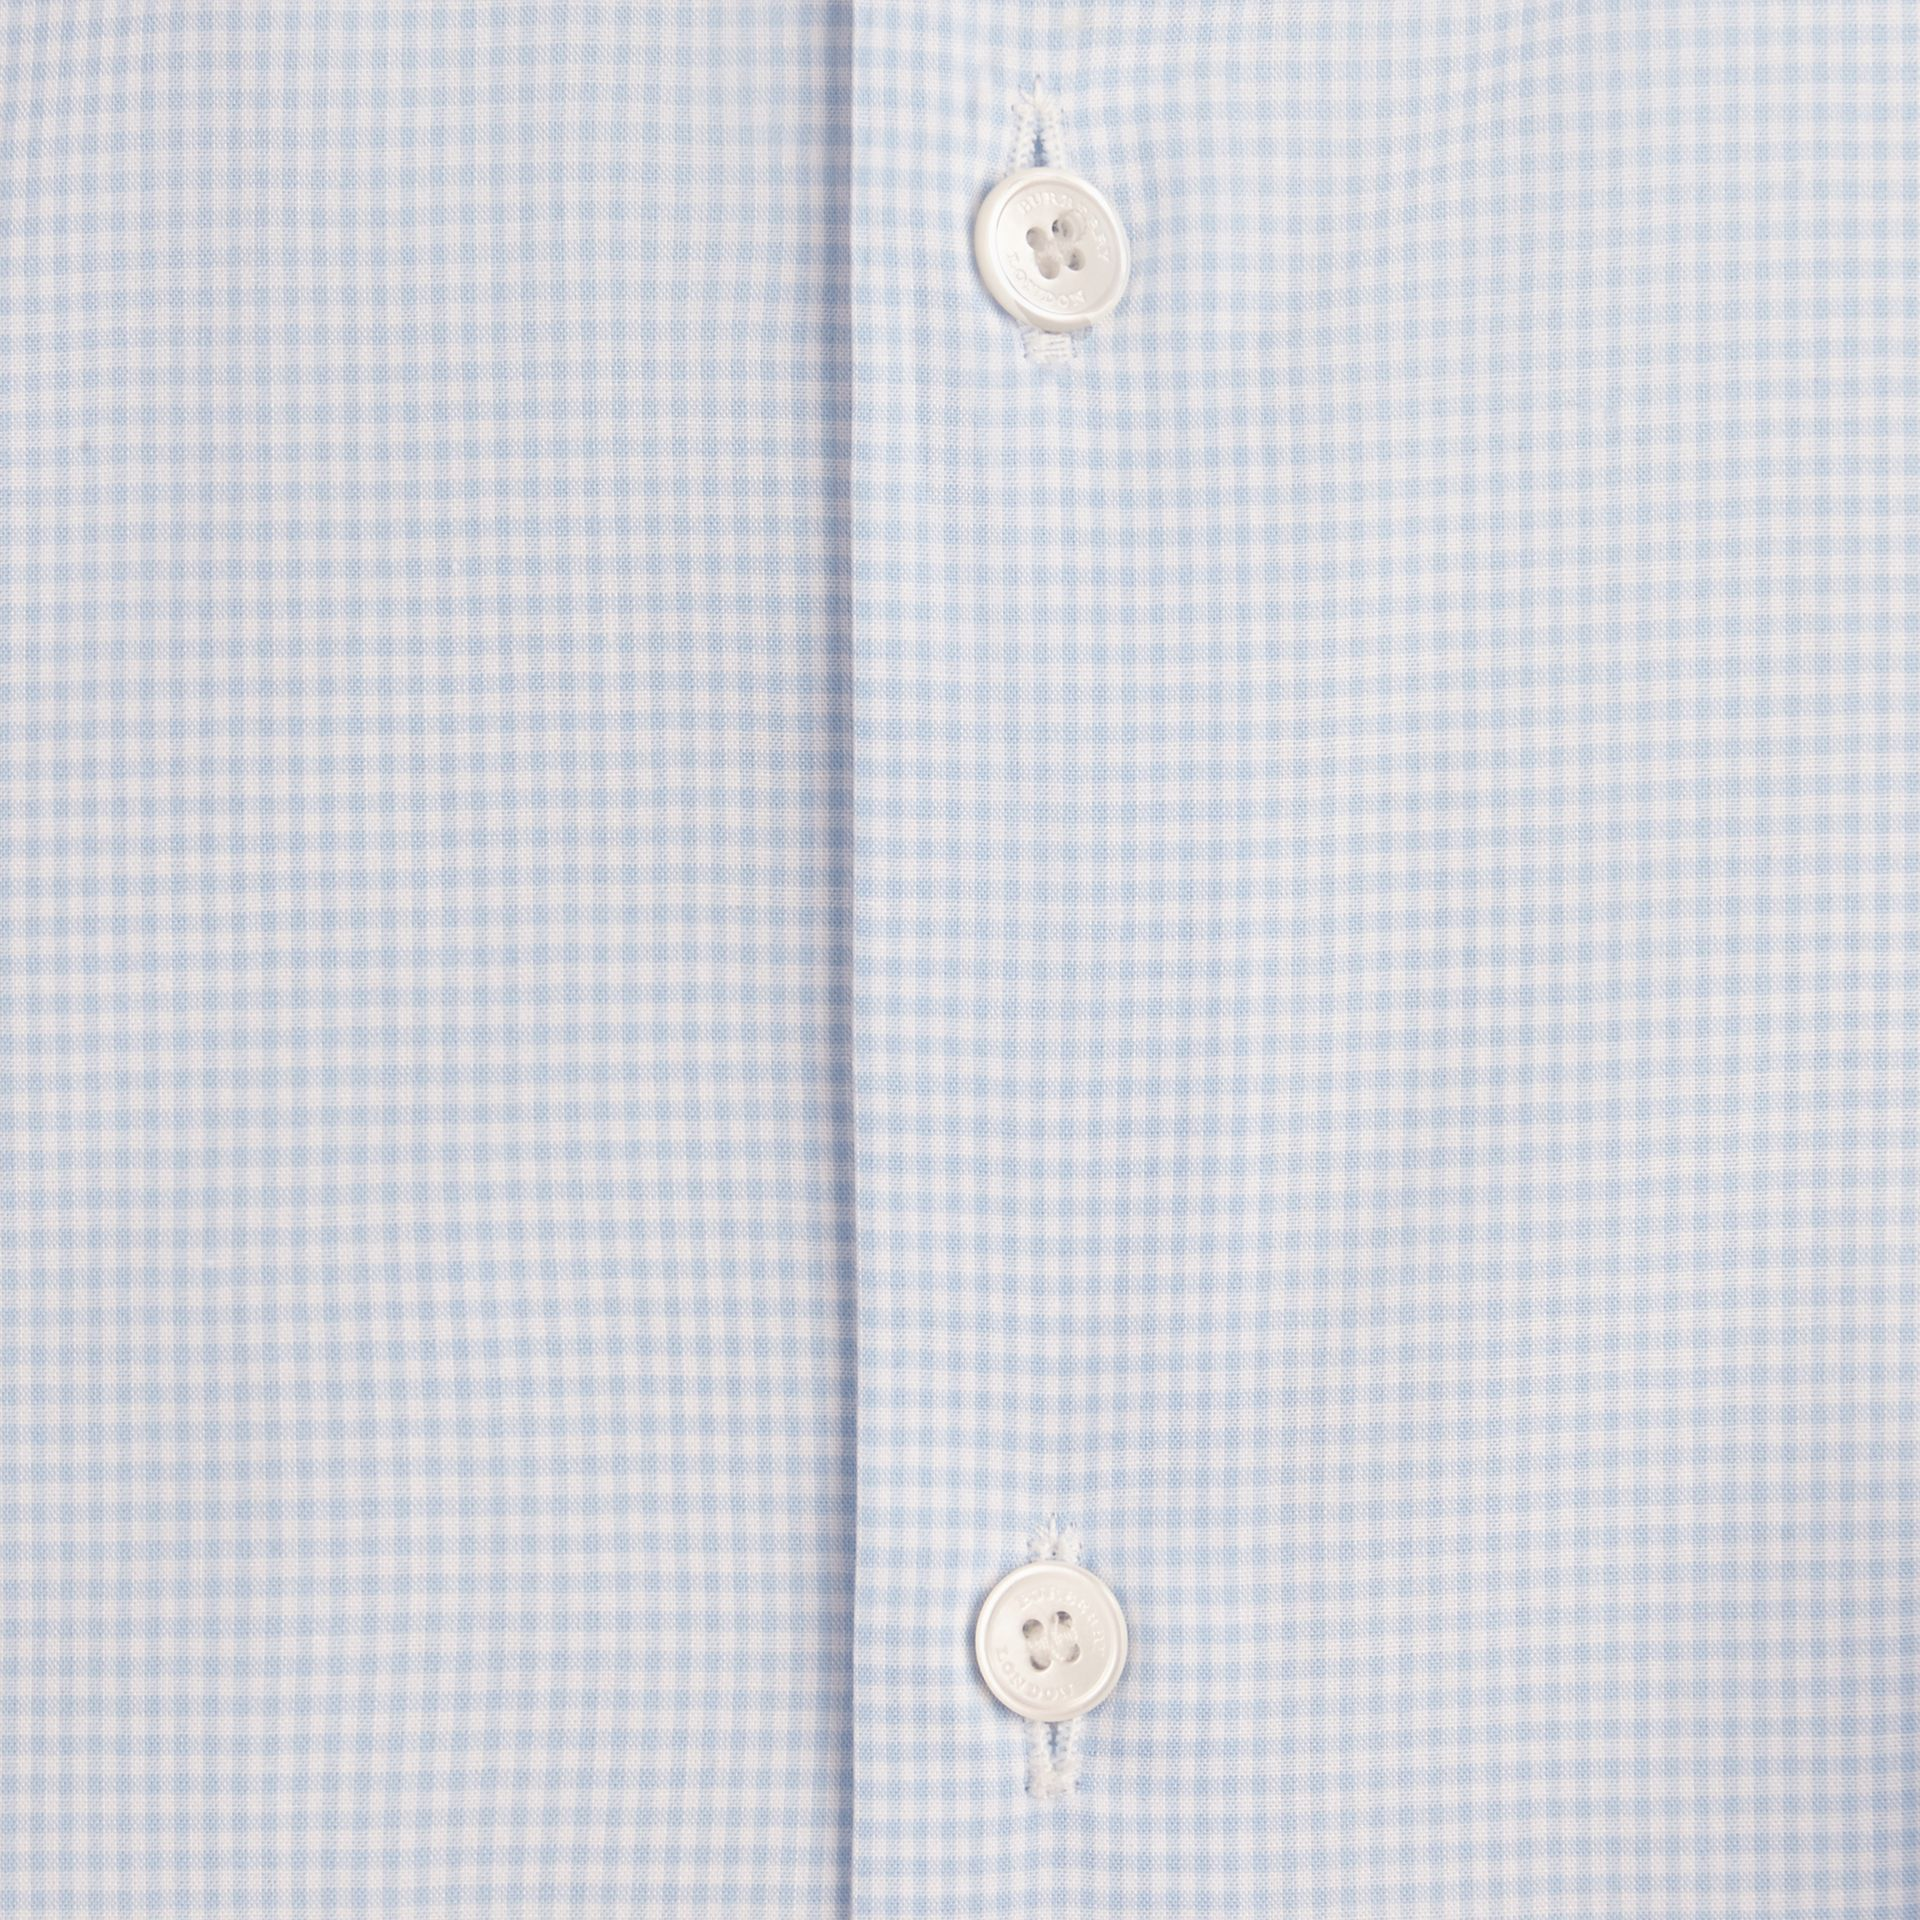 Slim Fit Button-down Collar Gingham Cotton Poplin Shirt in City Blue - gallery image 2